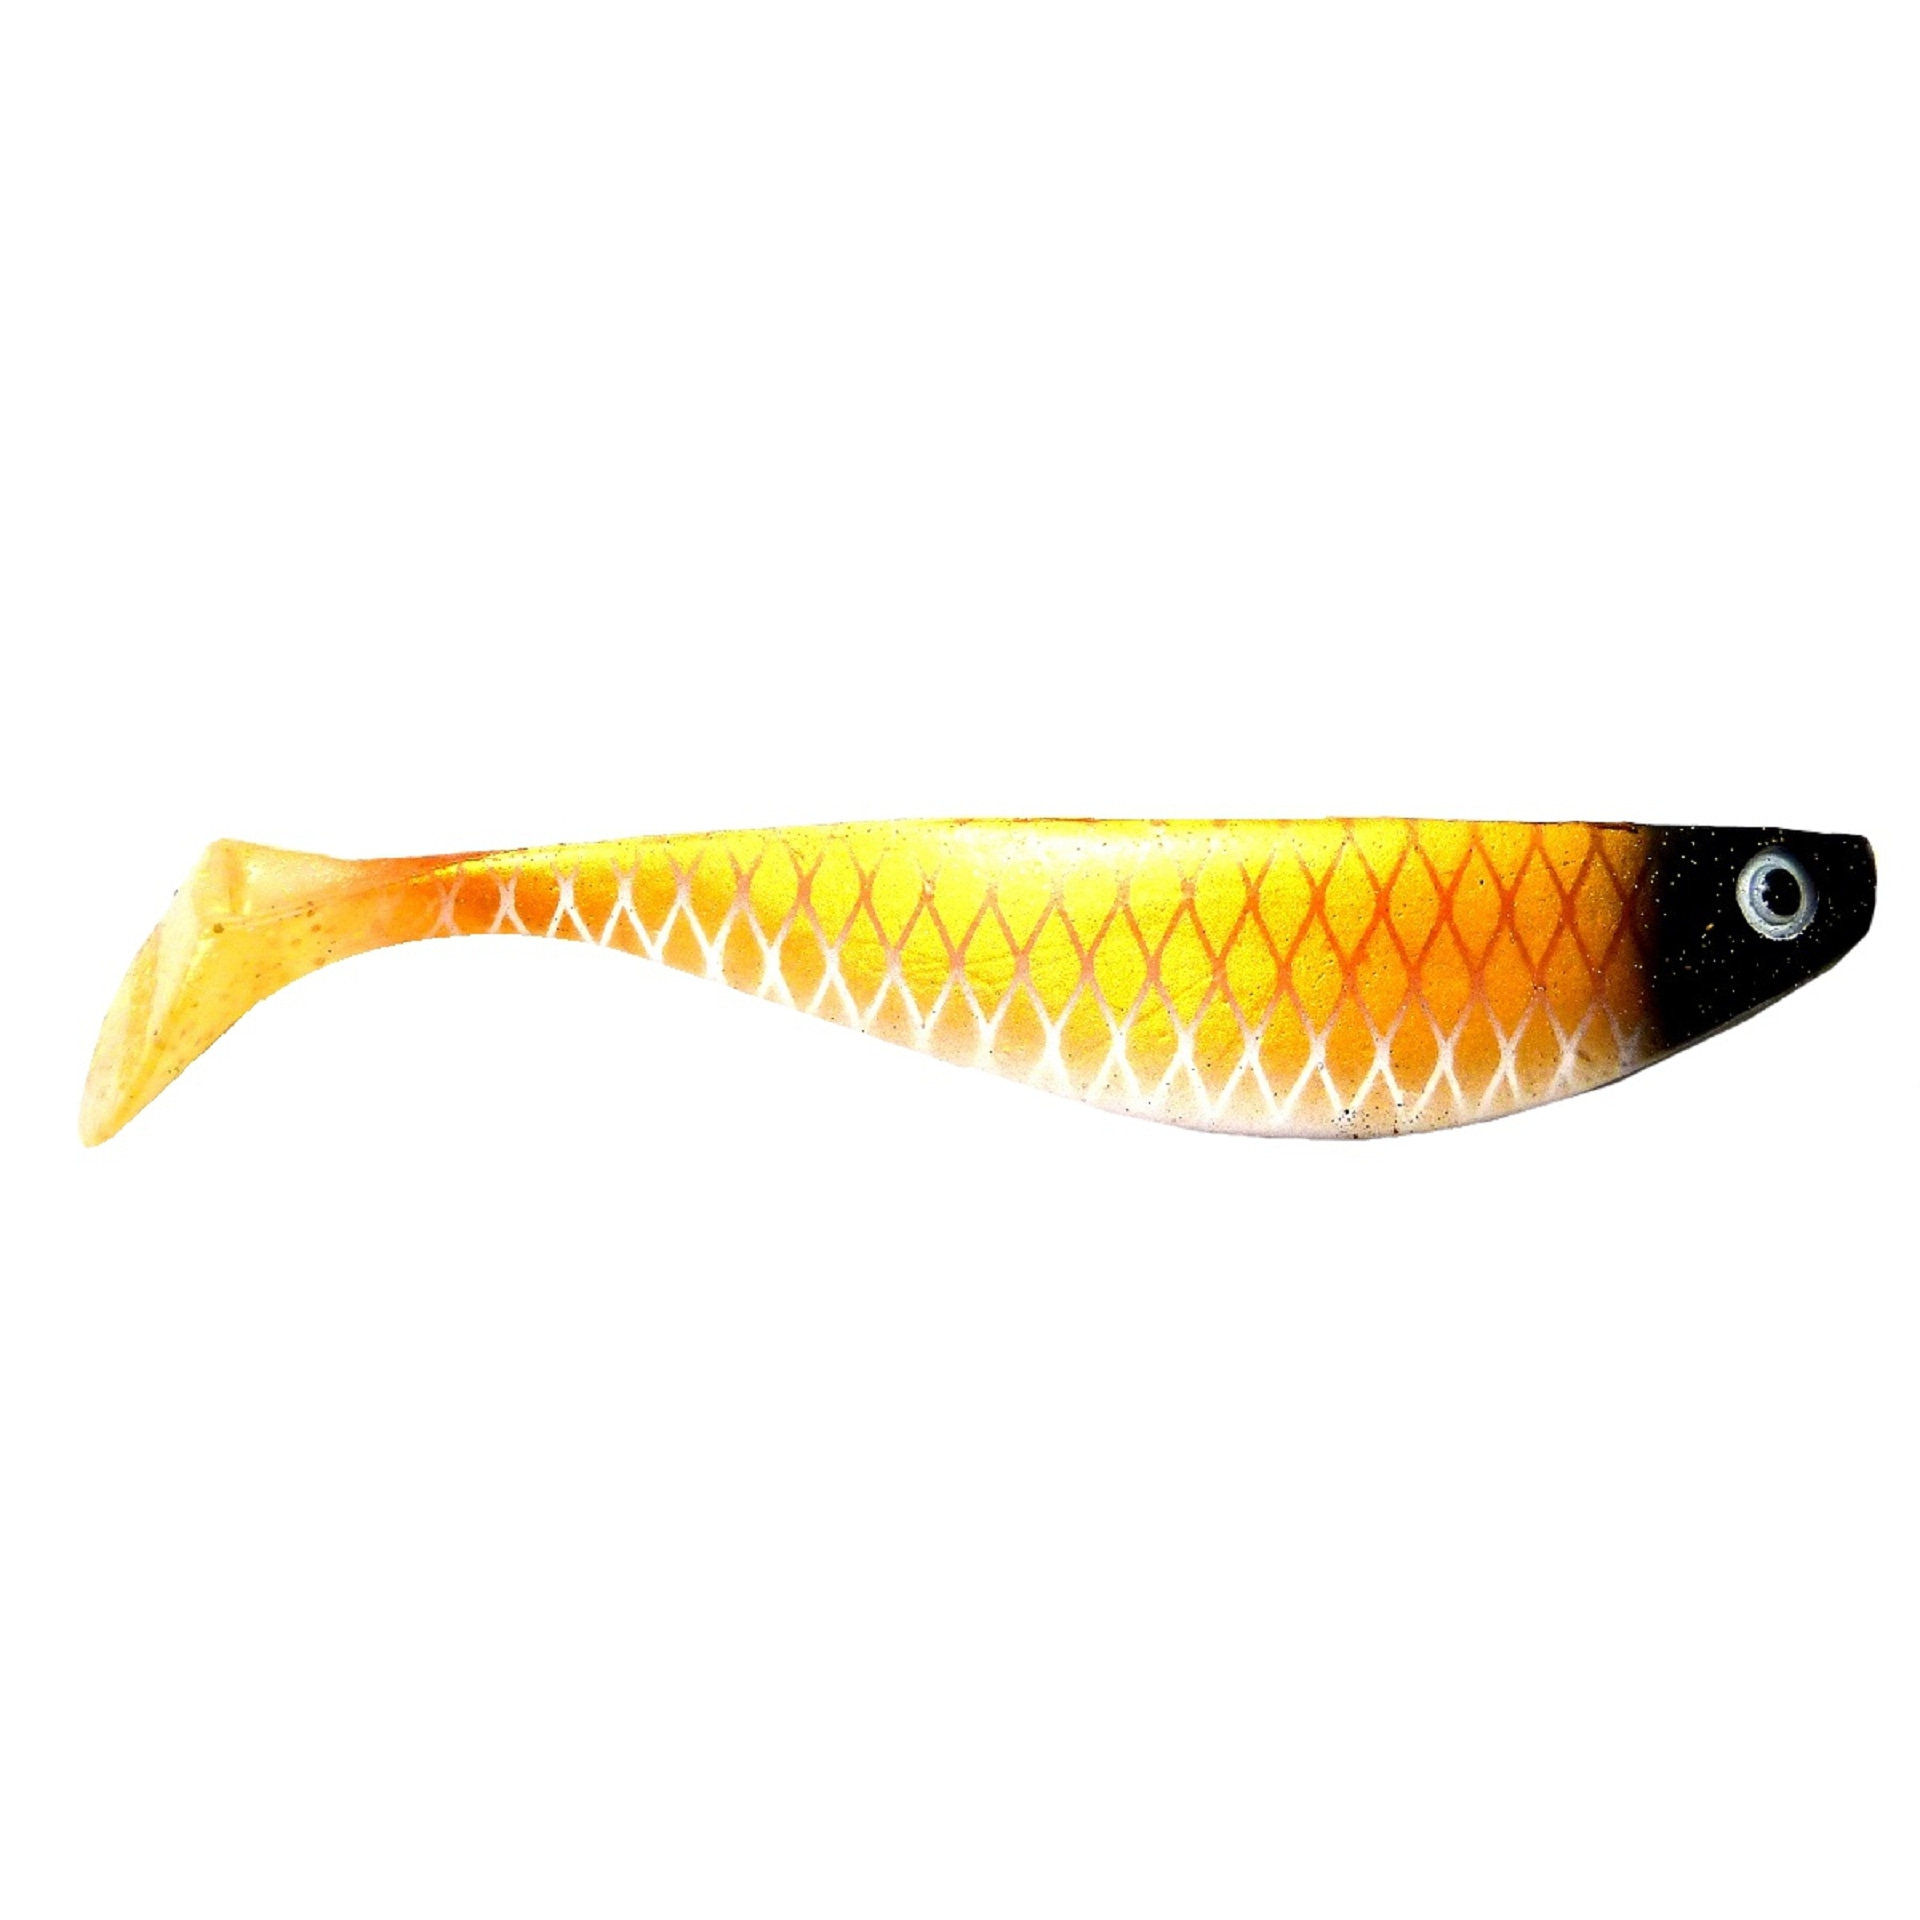 Shad Body Bronze Carp